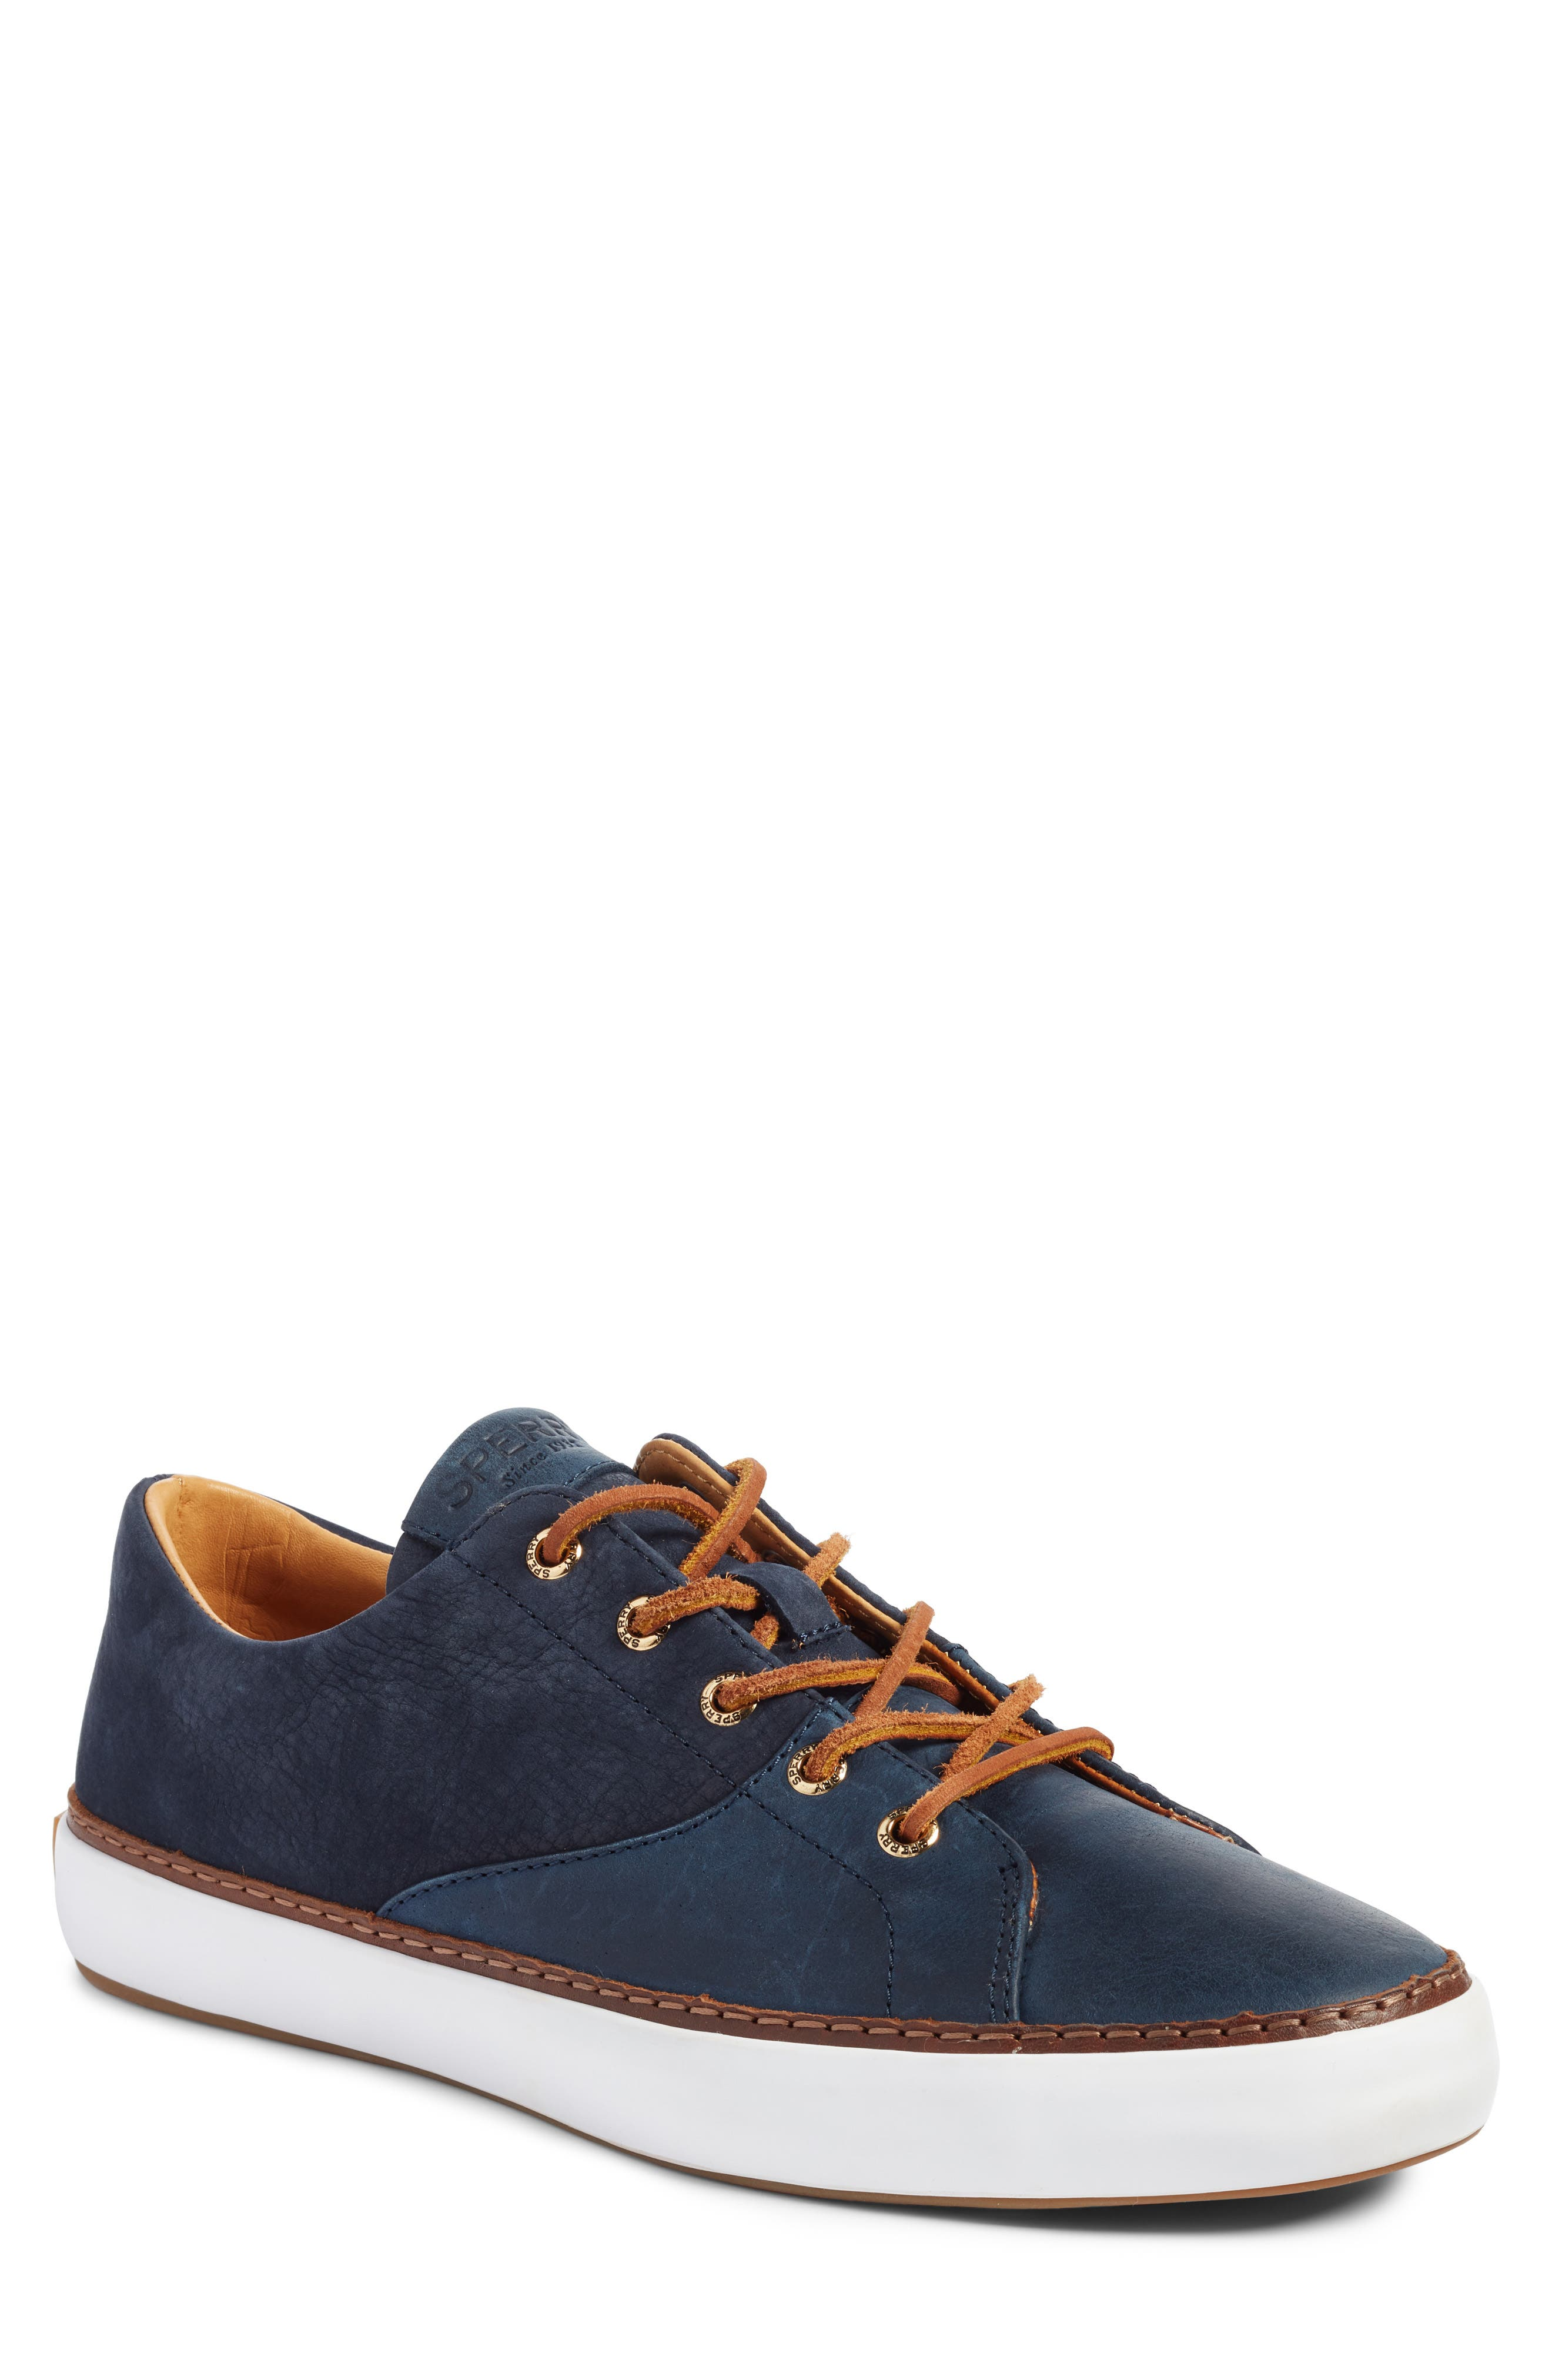 Gold Cup Haven Sneaker,                             Main thumbnail 1, color,                             Navy Leather